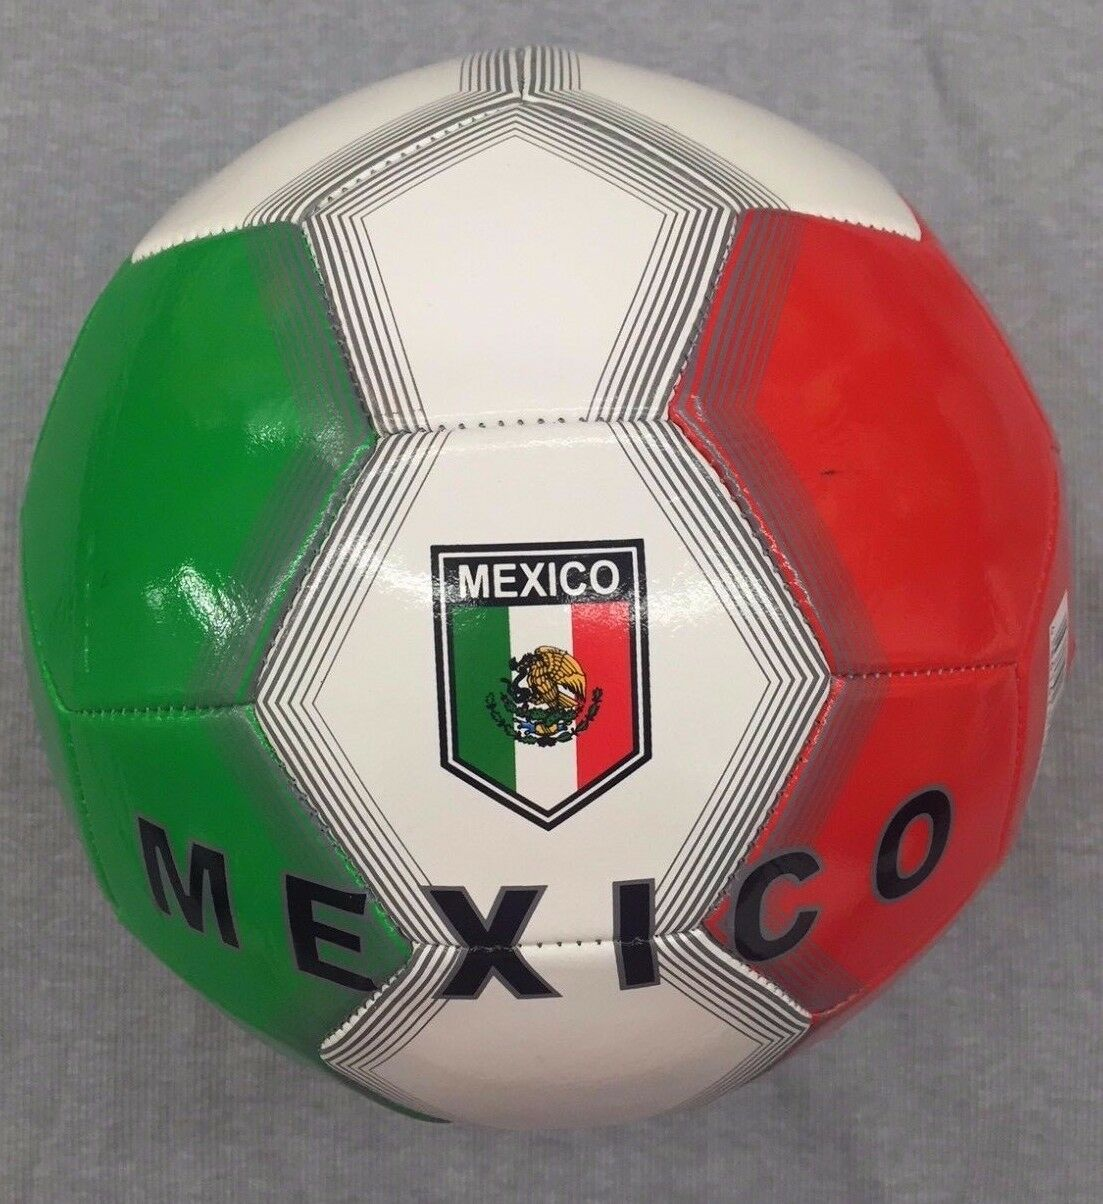 Lot Of 50 Mexico Soccer Balls Größe 5 Good For Charity Christmas Special Deal